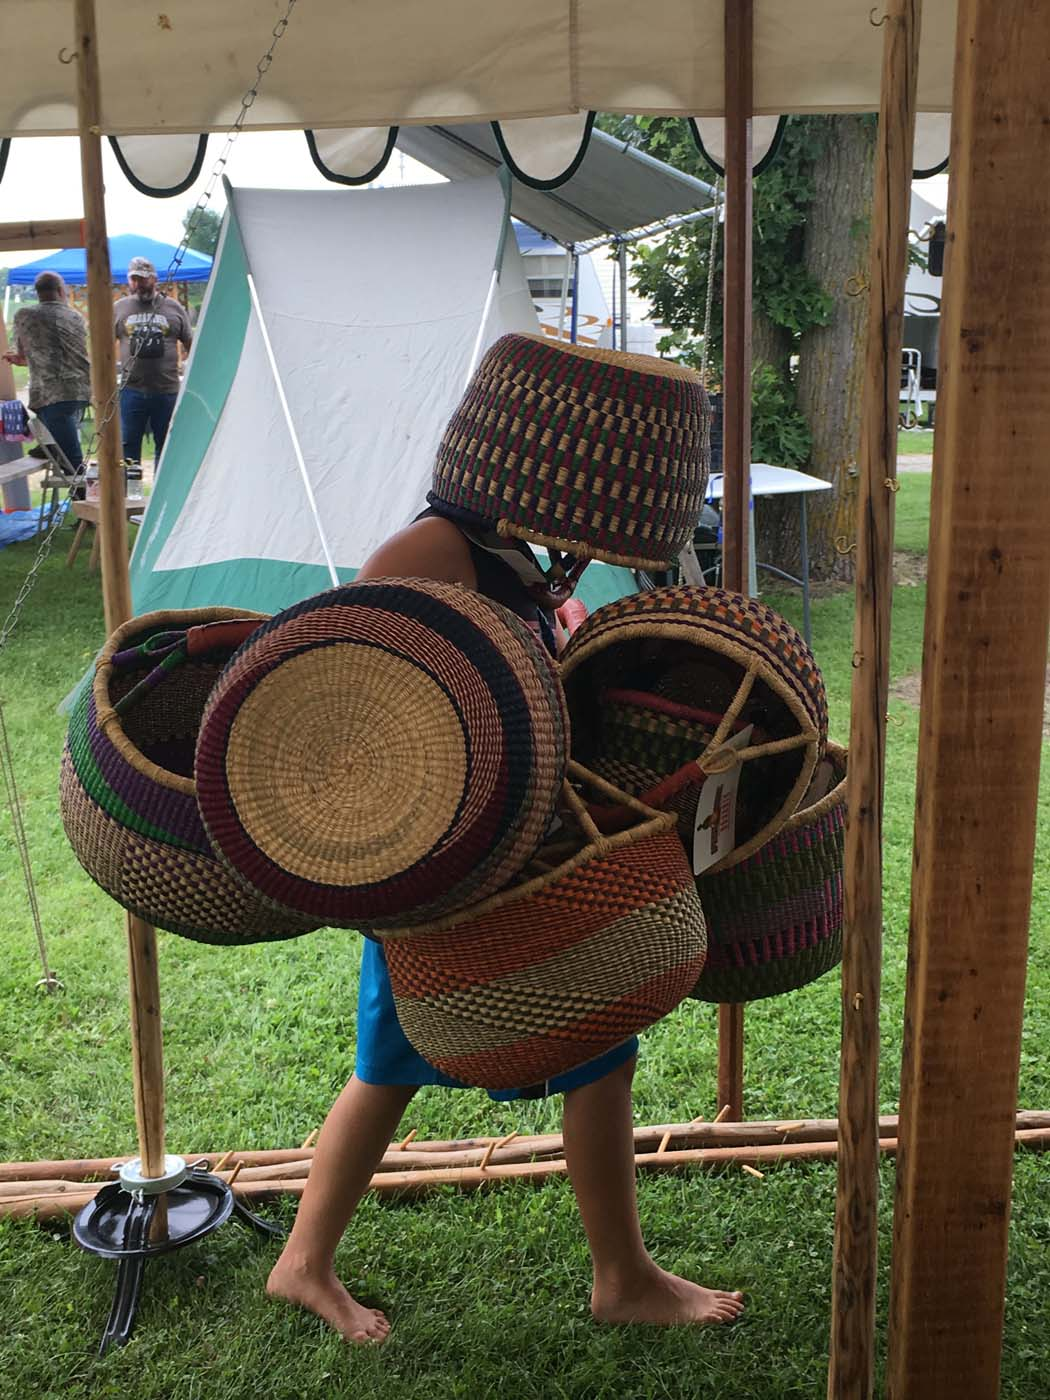 Shaping baskets transforms them into their full-bodied form